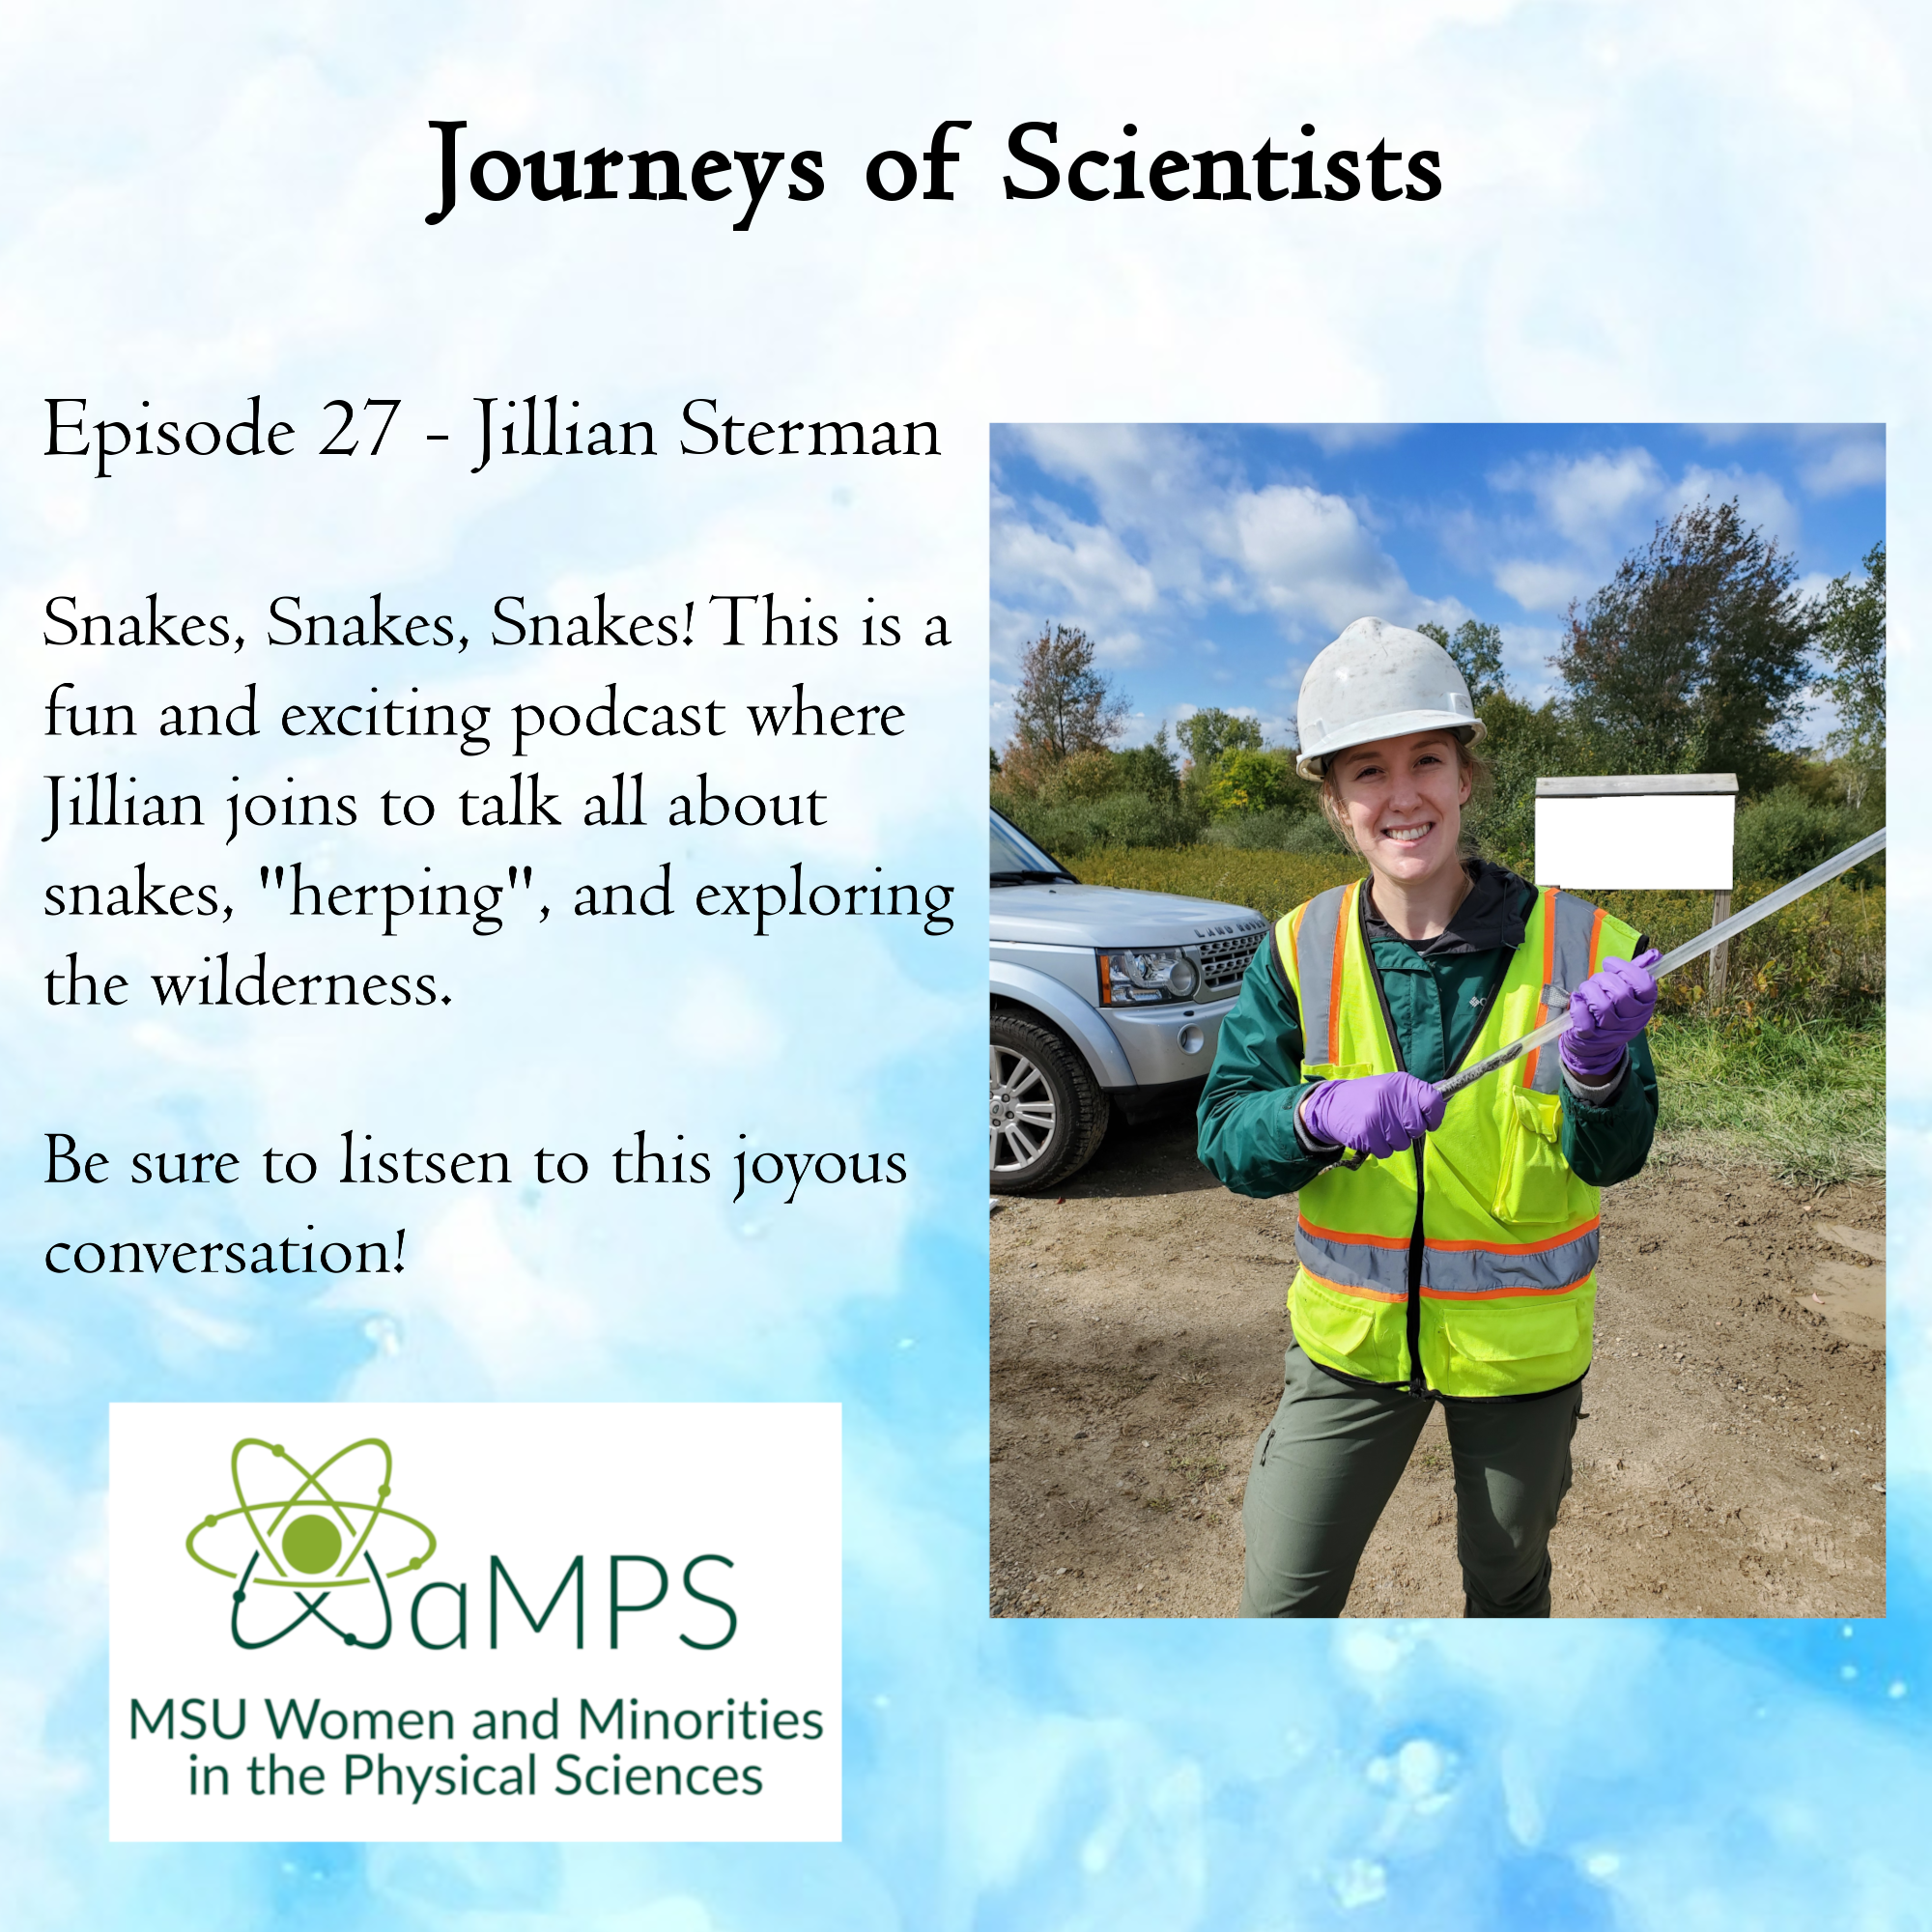 Currently Jillian Sterman is in her 1st year of her Master's degree at MSU in the department of Fisheries and Wildlife; her thesis focuses on the eastern massasauga rattlesnake, their road ecology and population dynamics in Michigan. She tracks individual rattlesnake's movement, estimates their space use and home range to determine if they occupy highway right-of-ways, and monitors their responses to road maintenance activities in highway rights-of-way.